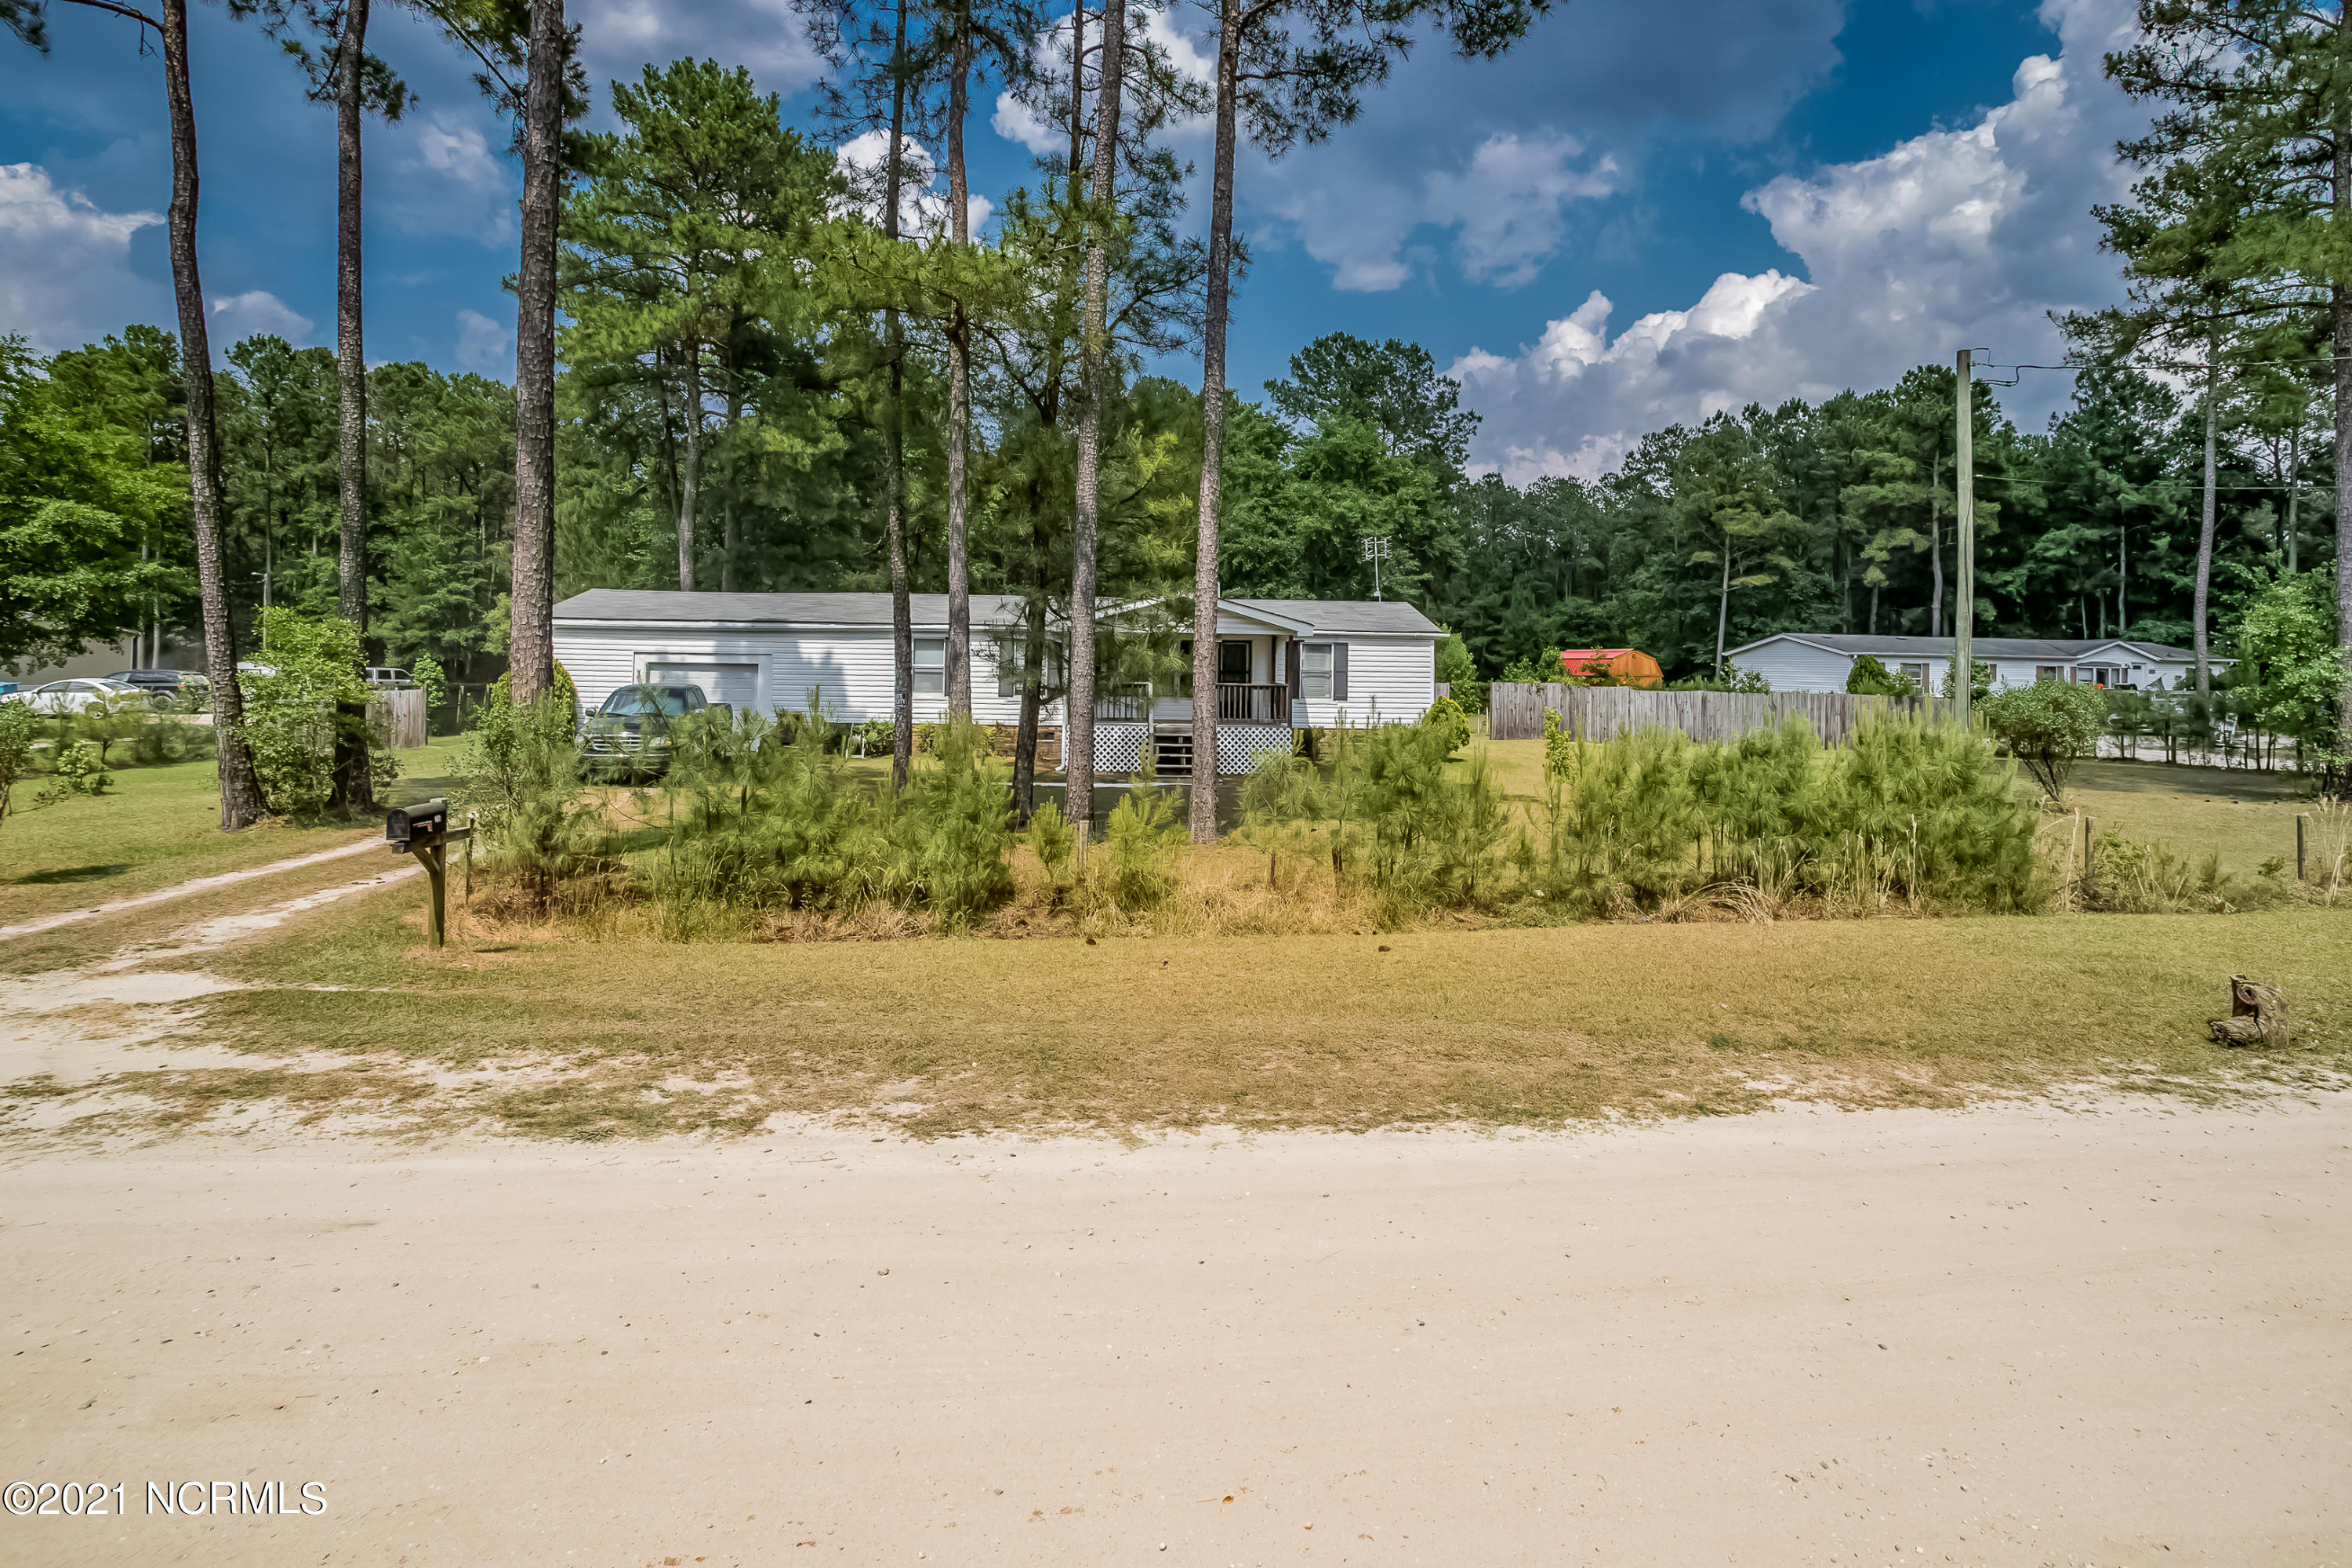 A remarkable opportunity for someone who needs everything!  This lovely 3 bedroom 2 bath manufactured home on a solid brick foundation comes fully furnished!  New Jenn Air indoor griddle and flat top stove, built in oven, and all appliances will convey with the sale.  Enjoy your peaceful evenings on the covered front porch or the back deck while looking in to the nicely manicured yard with fruit trees and grape vines.  If county living is what you want, look no further!  This home has it all!